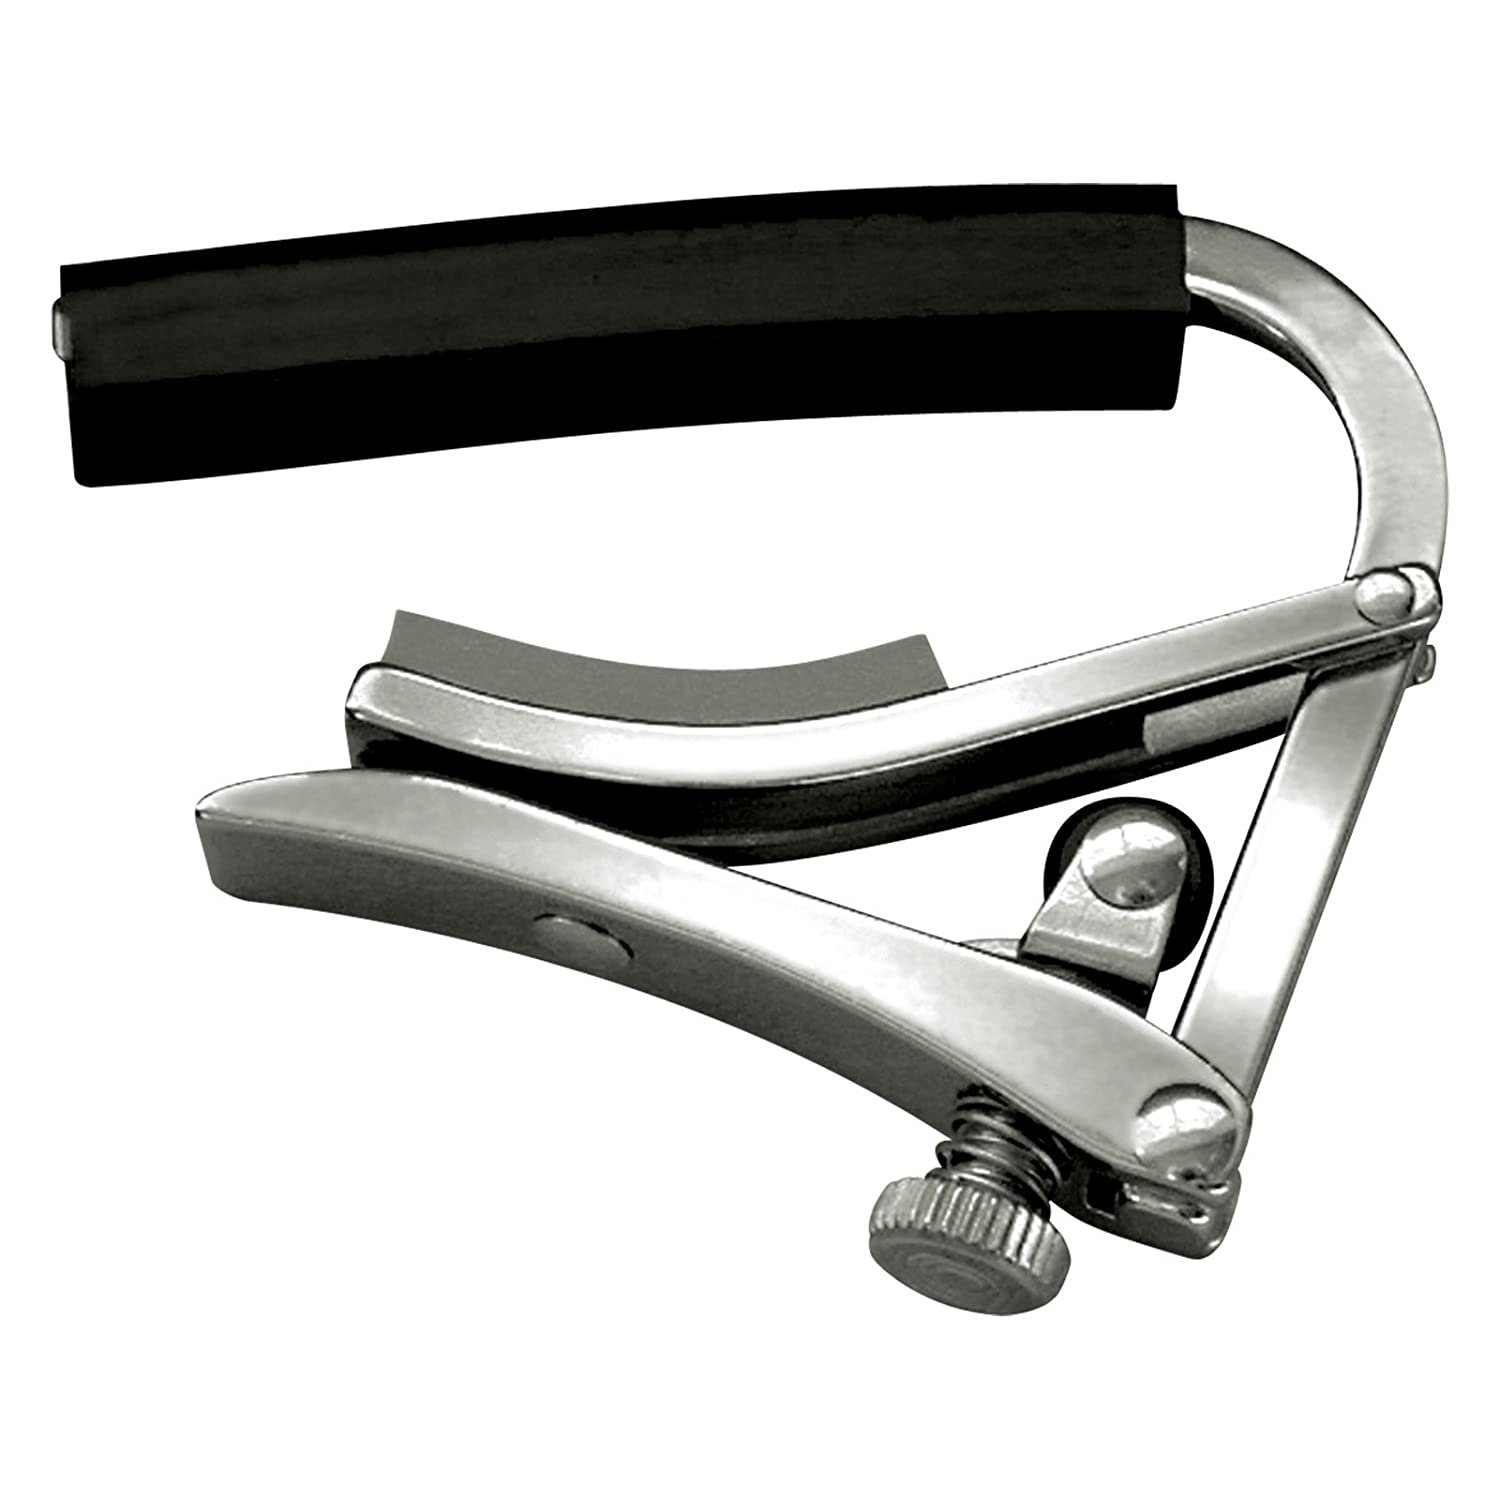 Shubb GC-30 Deluxe Acoustic Guitar Capo - Stainless Steel